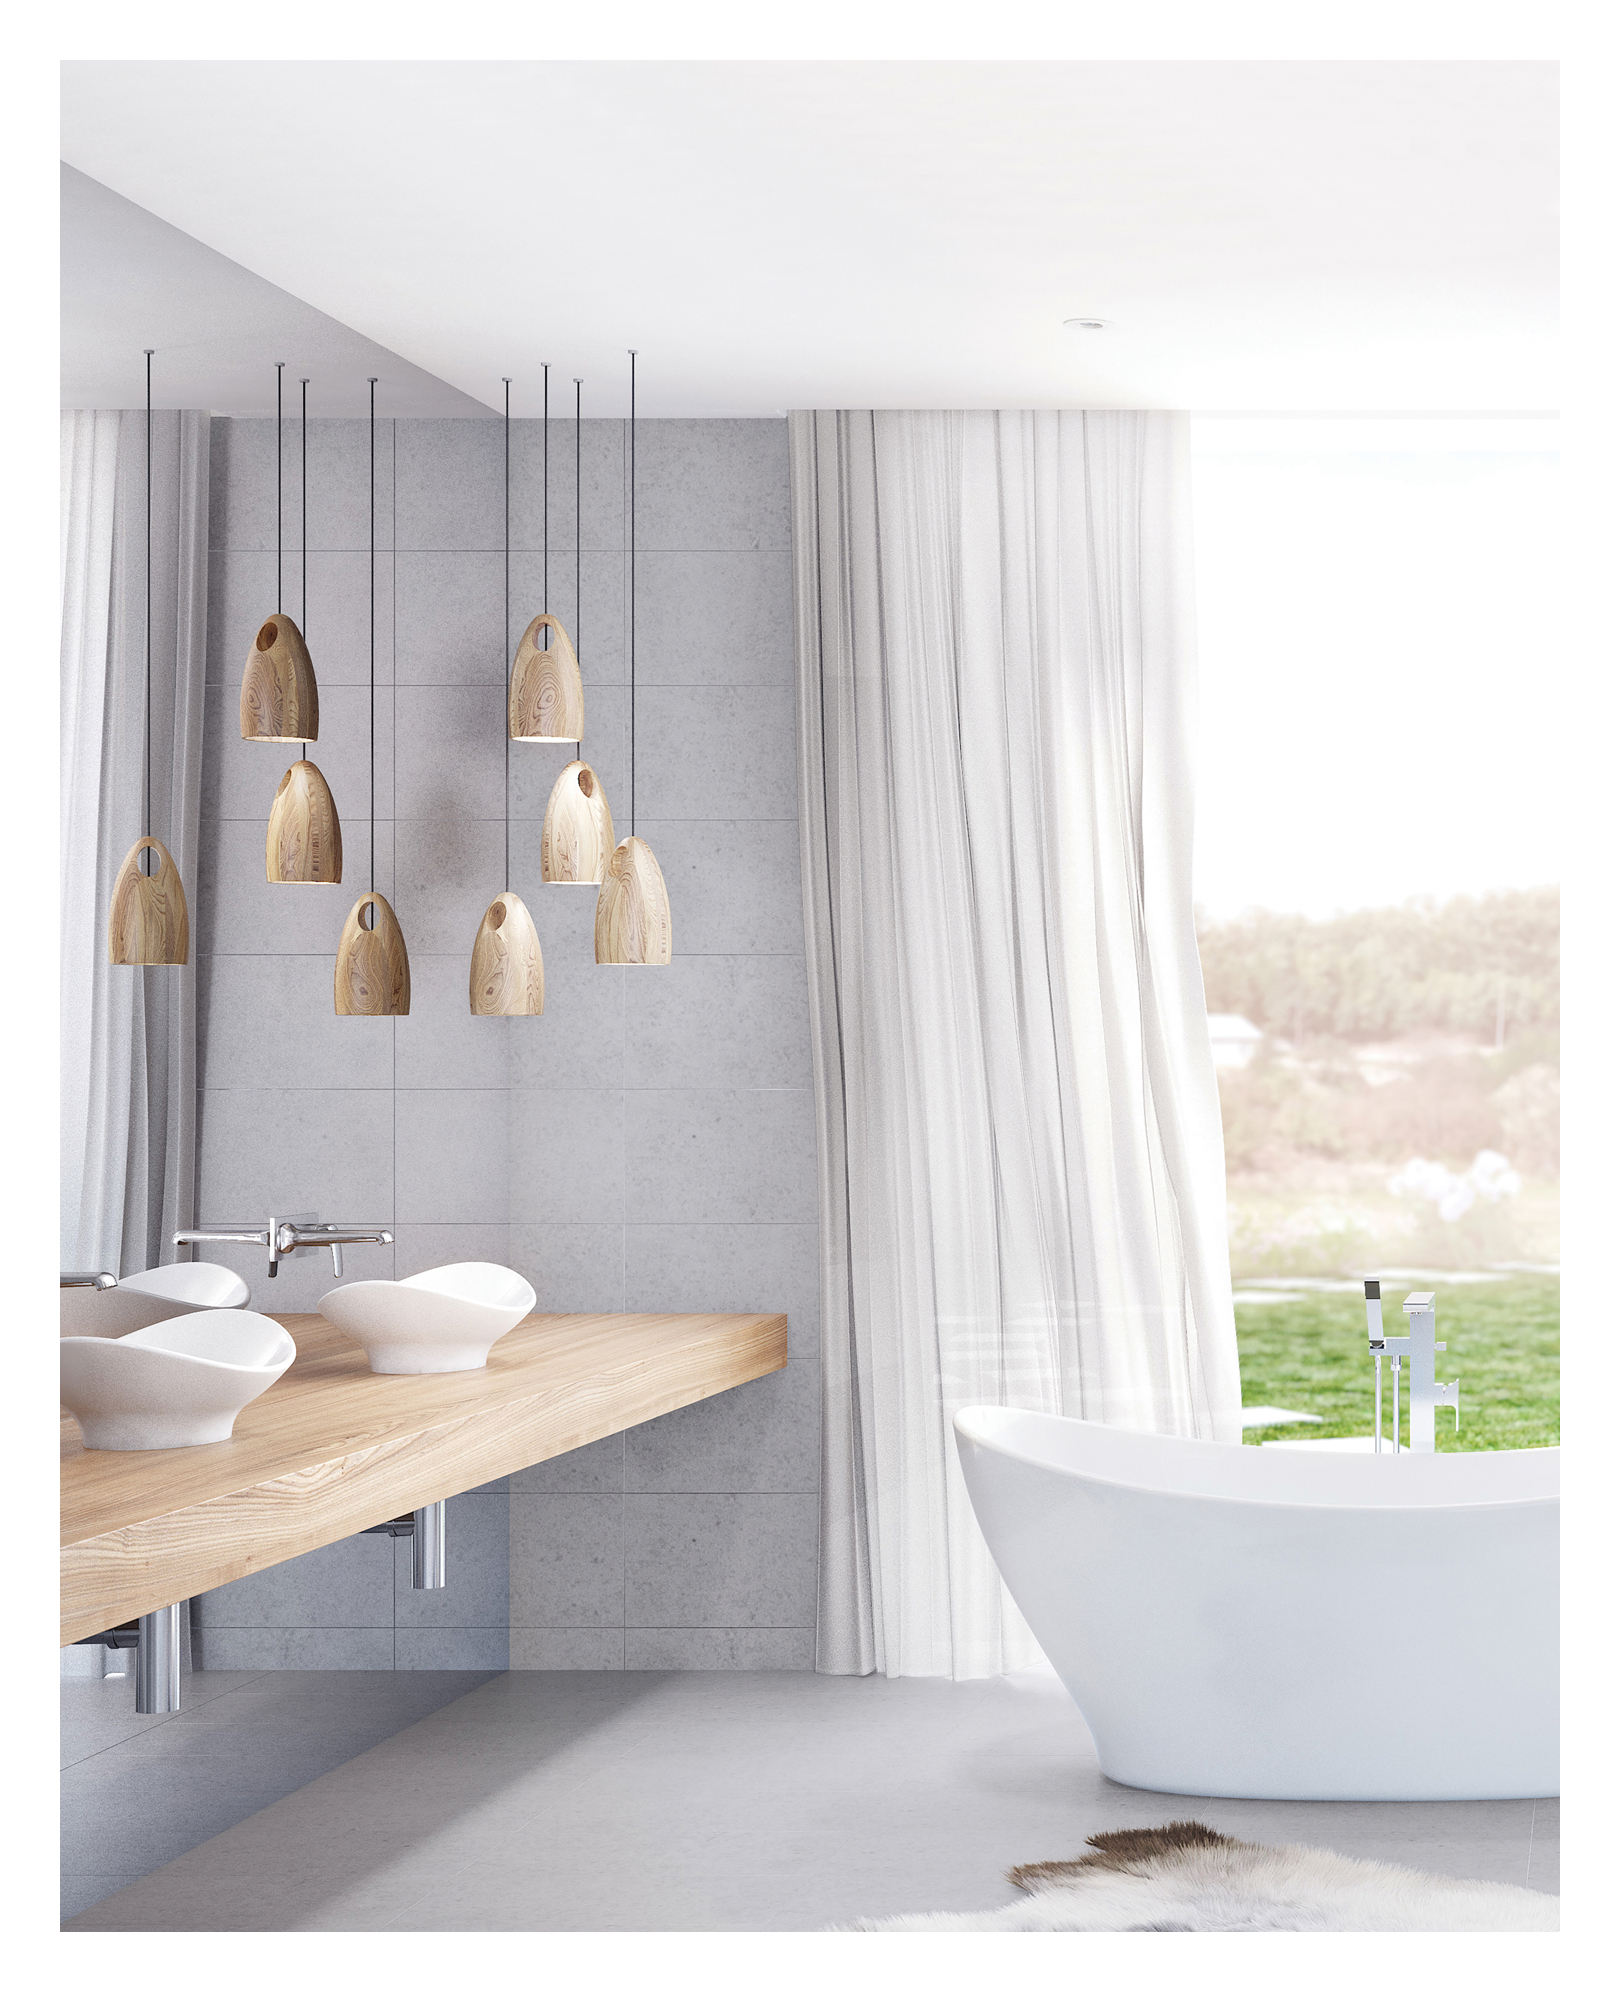 Research current Bathroom Trends